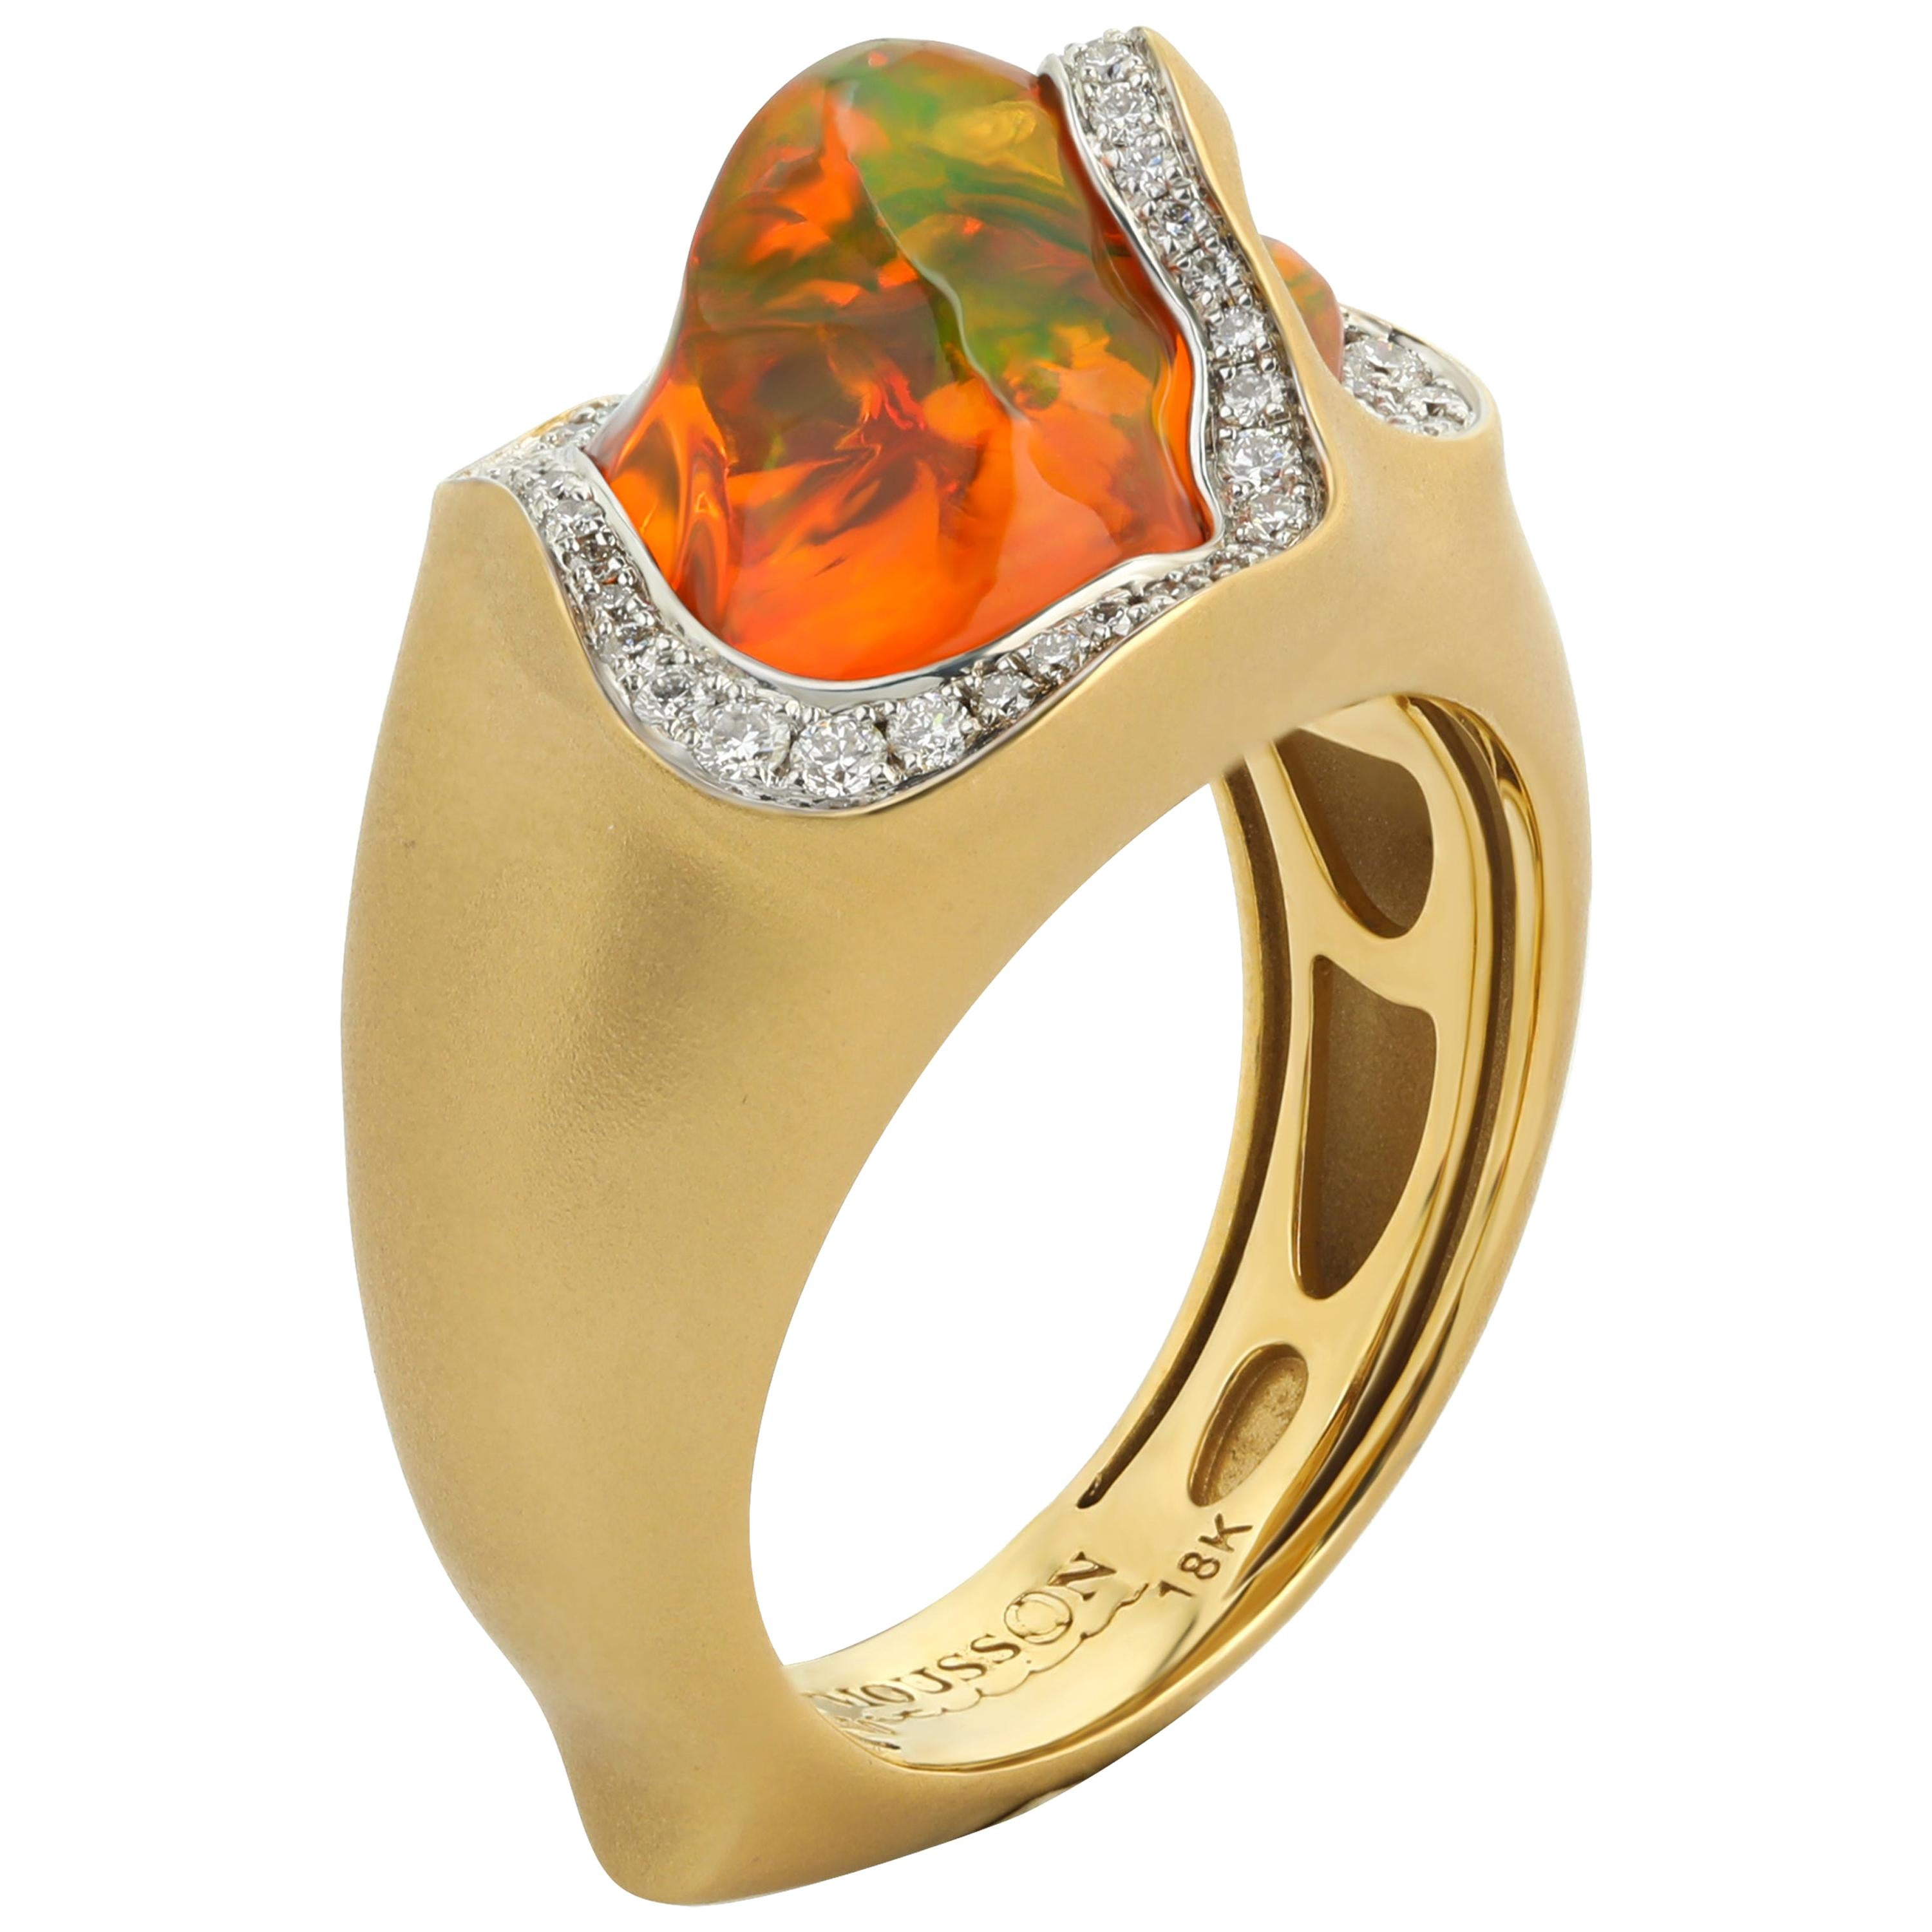 Mexican Opal 4.12 Carat Diamonds One of a Kind 18 Karat Yellow Gold Ring